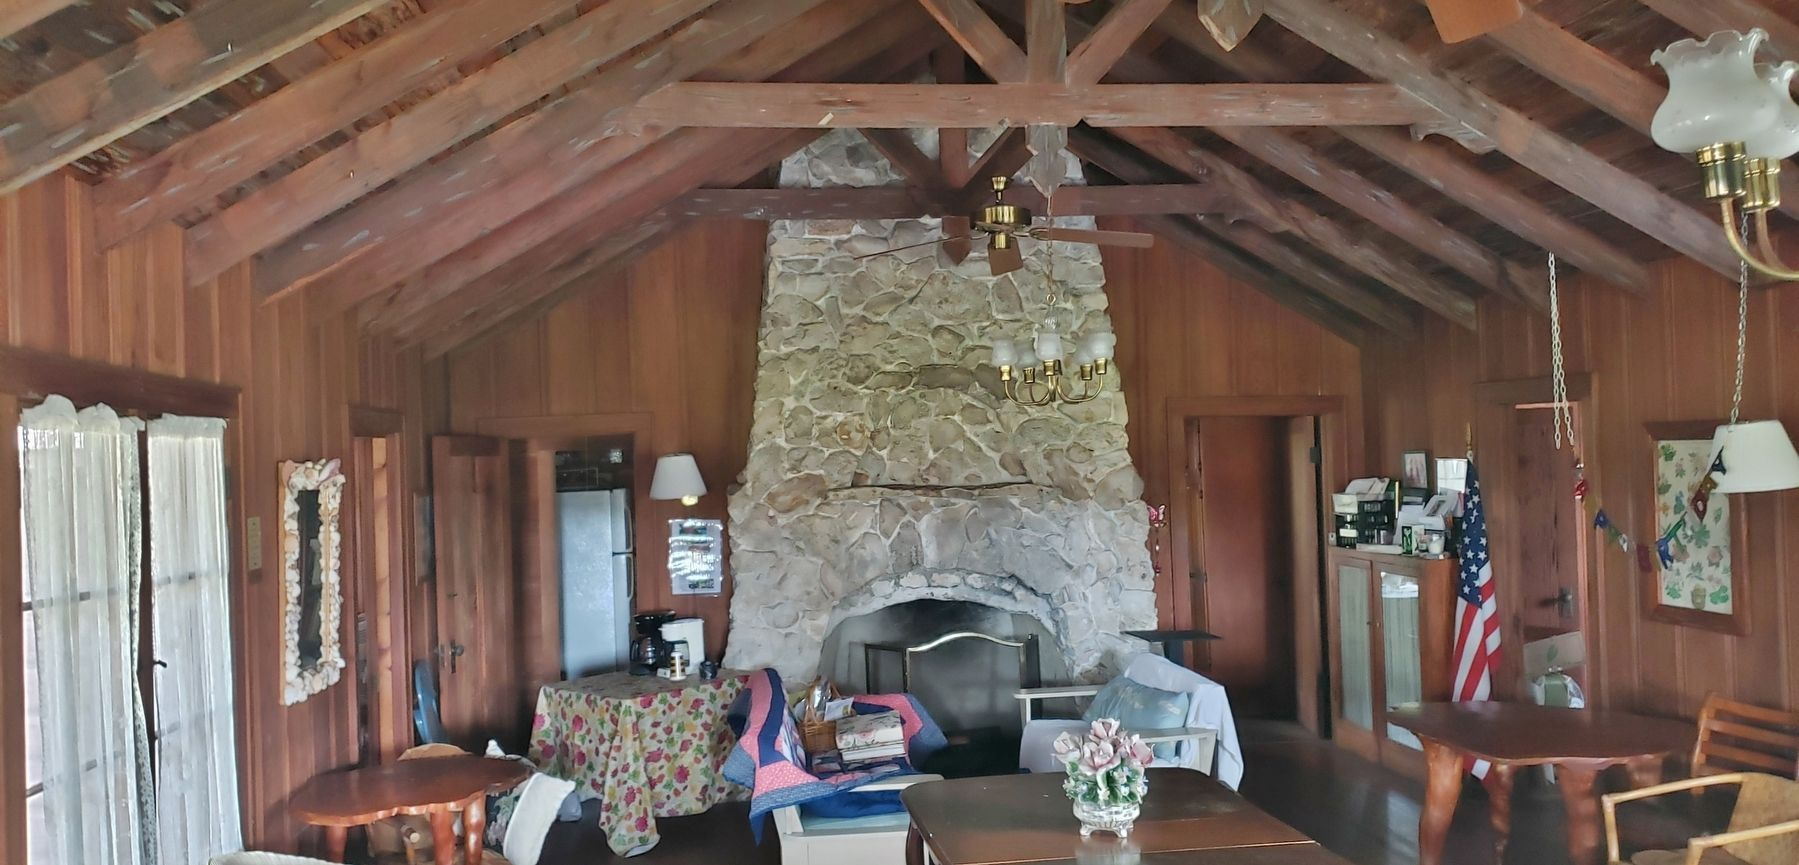 Garden Center Interior (<i>stone fireplace; cypress furniture, walls and rafters</i>) image. Click for full size.